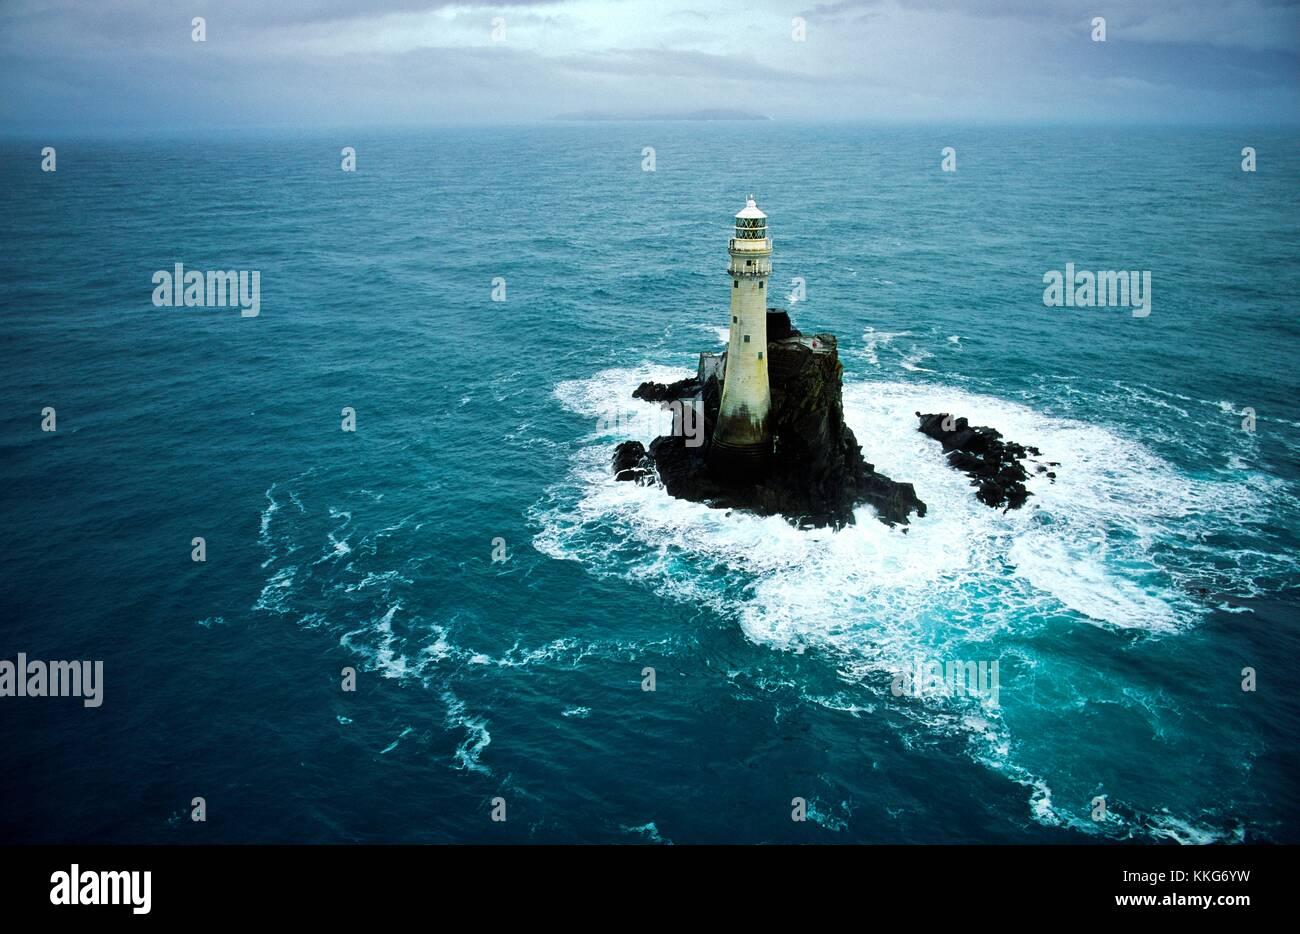 The Fastnet Rock Light Lighthouse off the Atlantic coast of County Cork, south west Ireland. - Stock Image